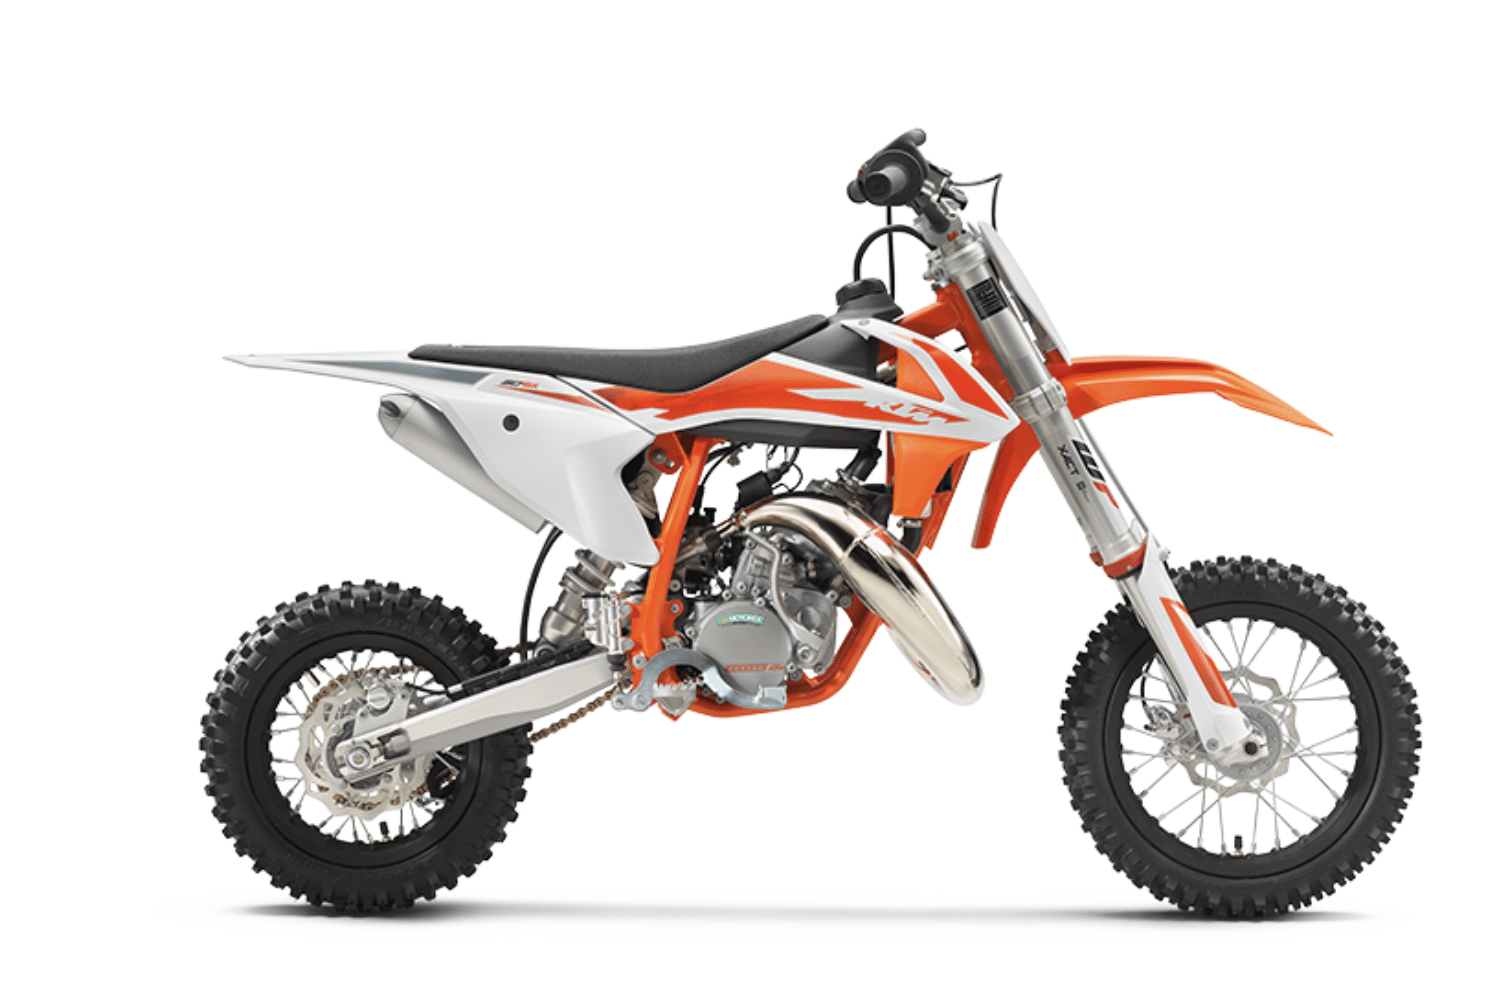 2020 KTM 50 SX kids motocross dirt bike